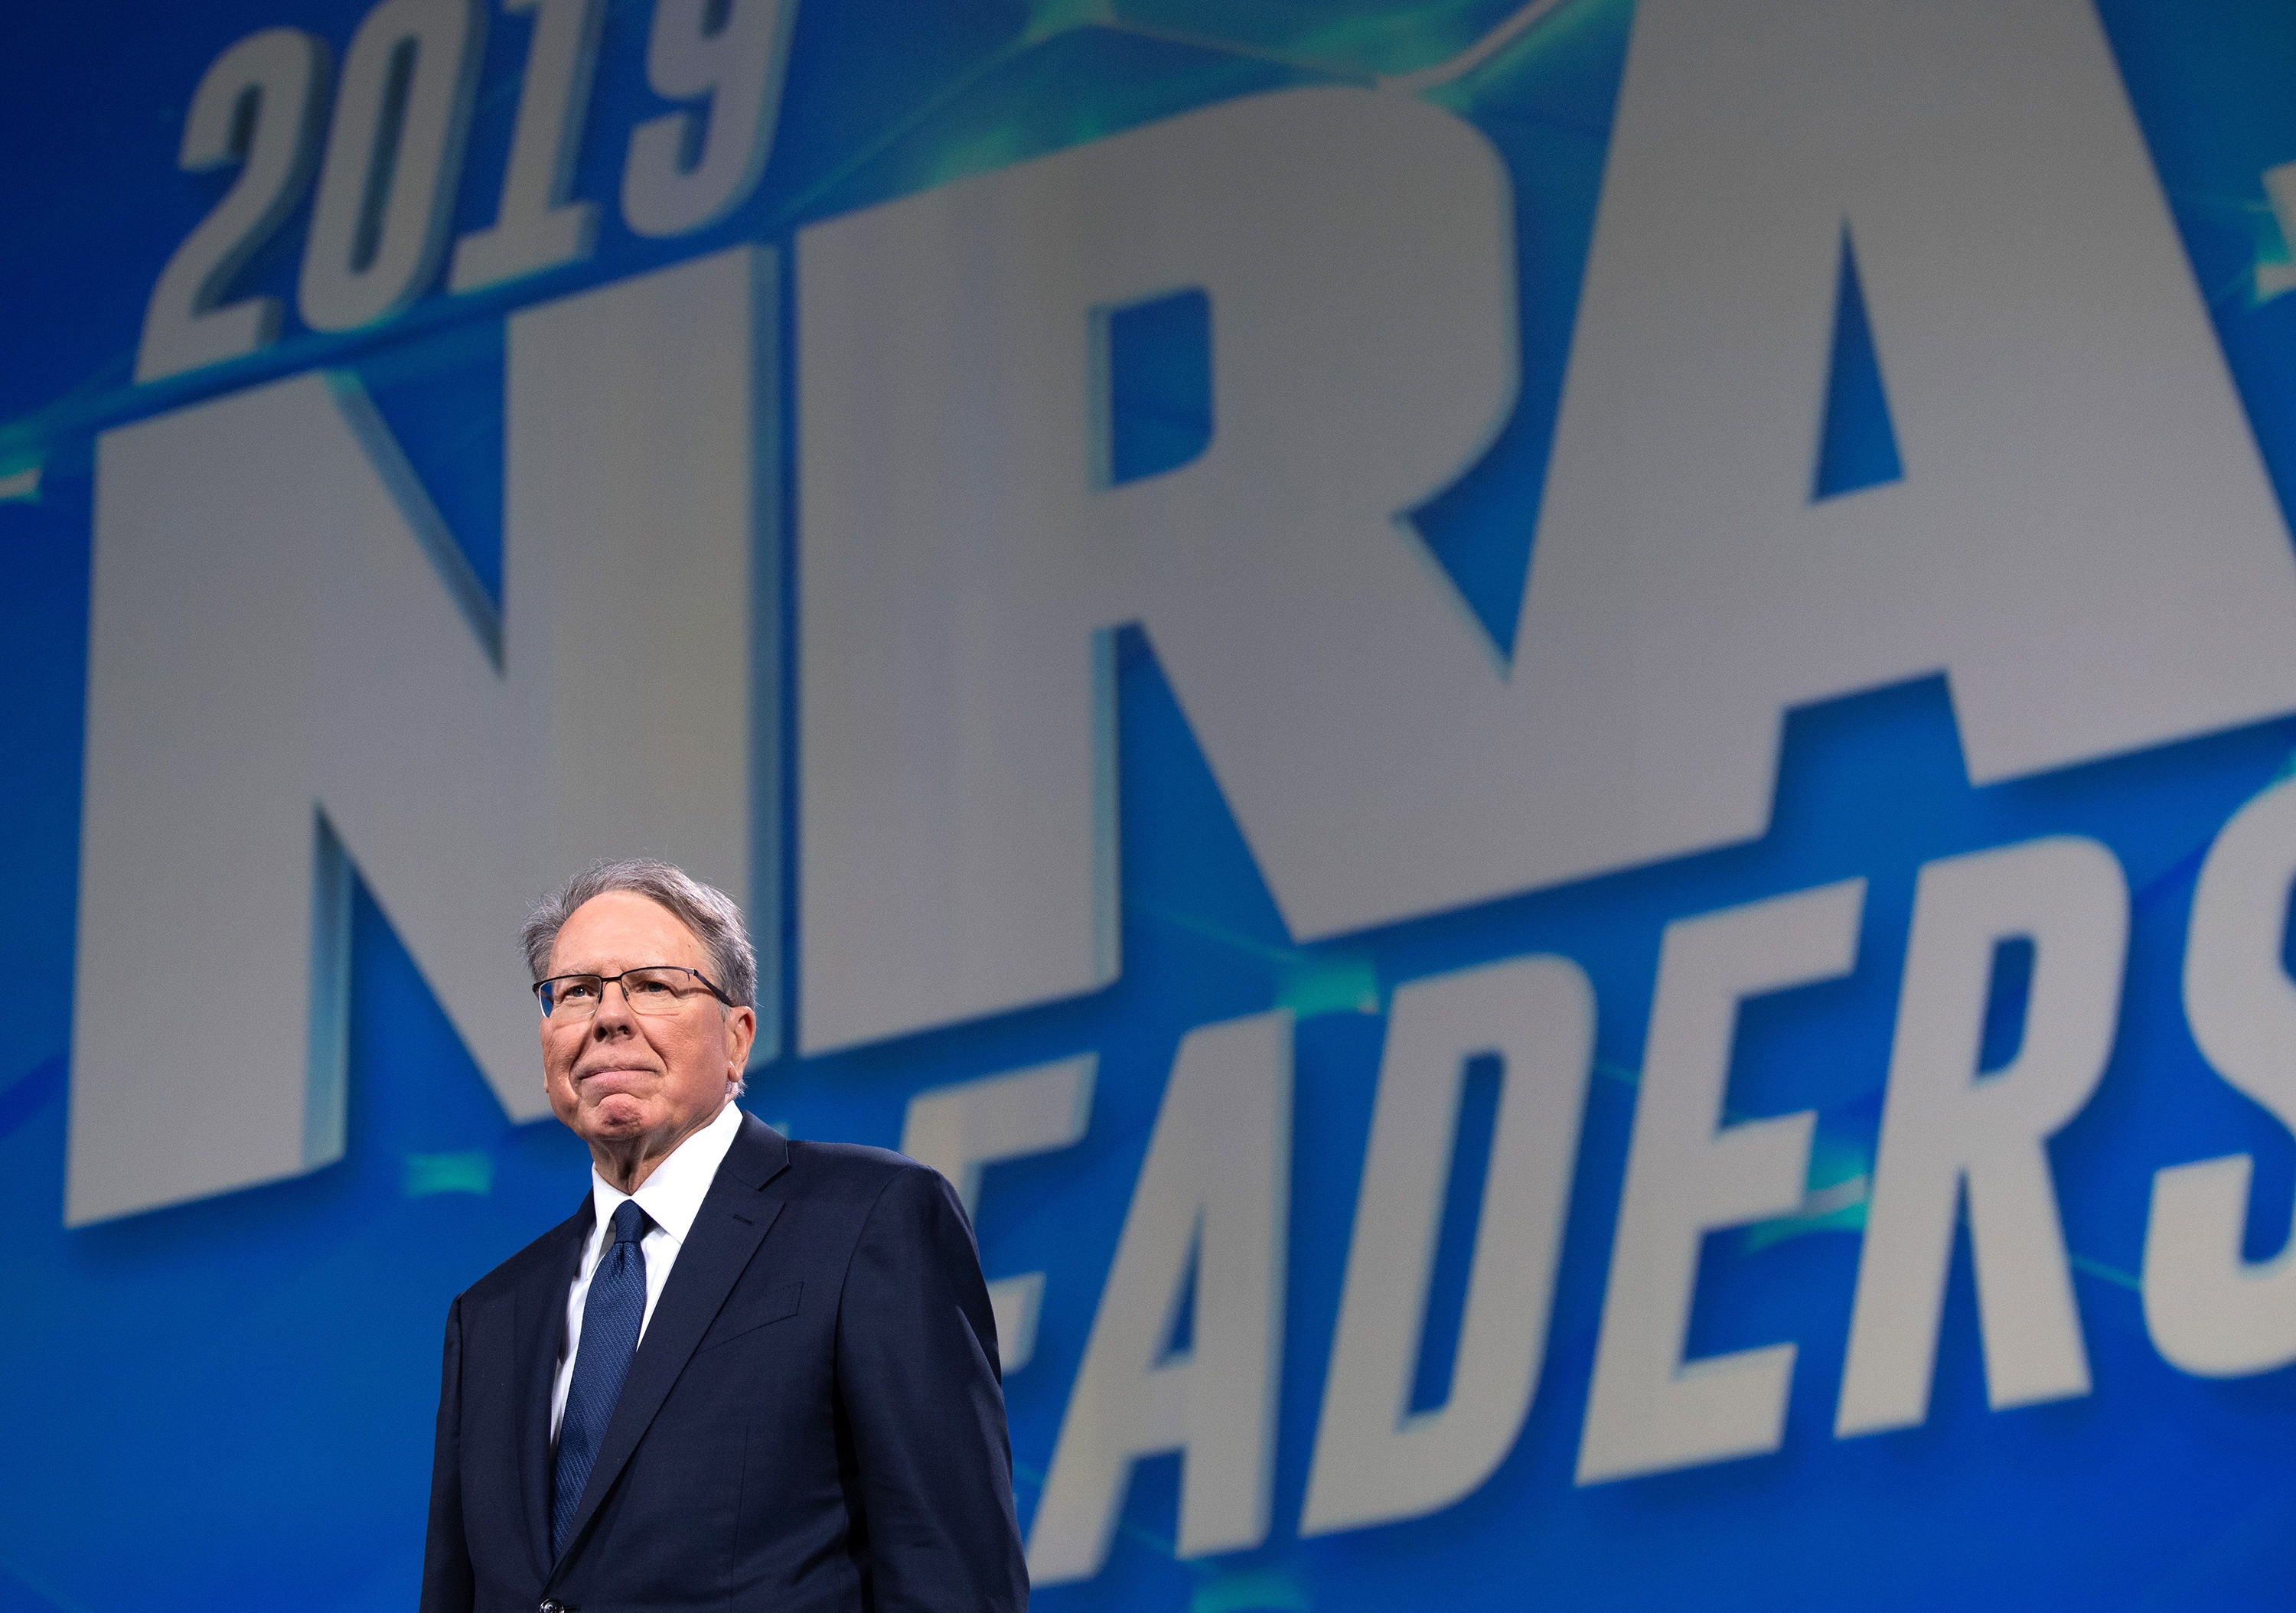 Judge expected to rule whether or not NRA can file for bankruptcy, which could pave the way for move to Texas